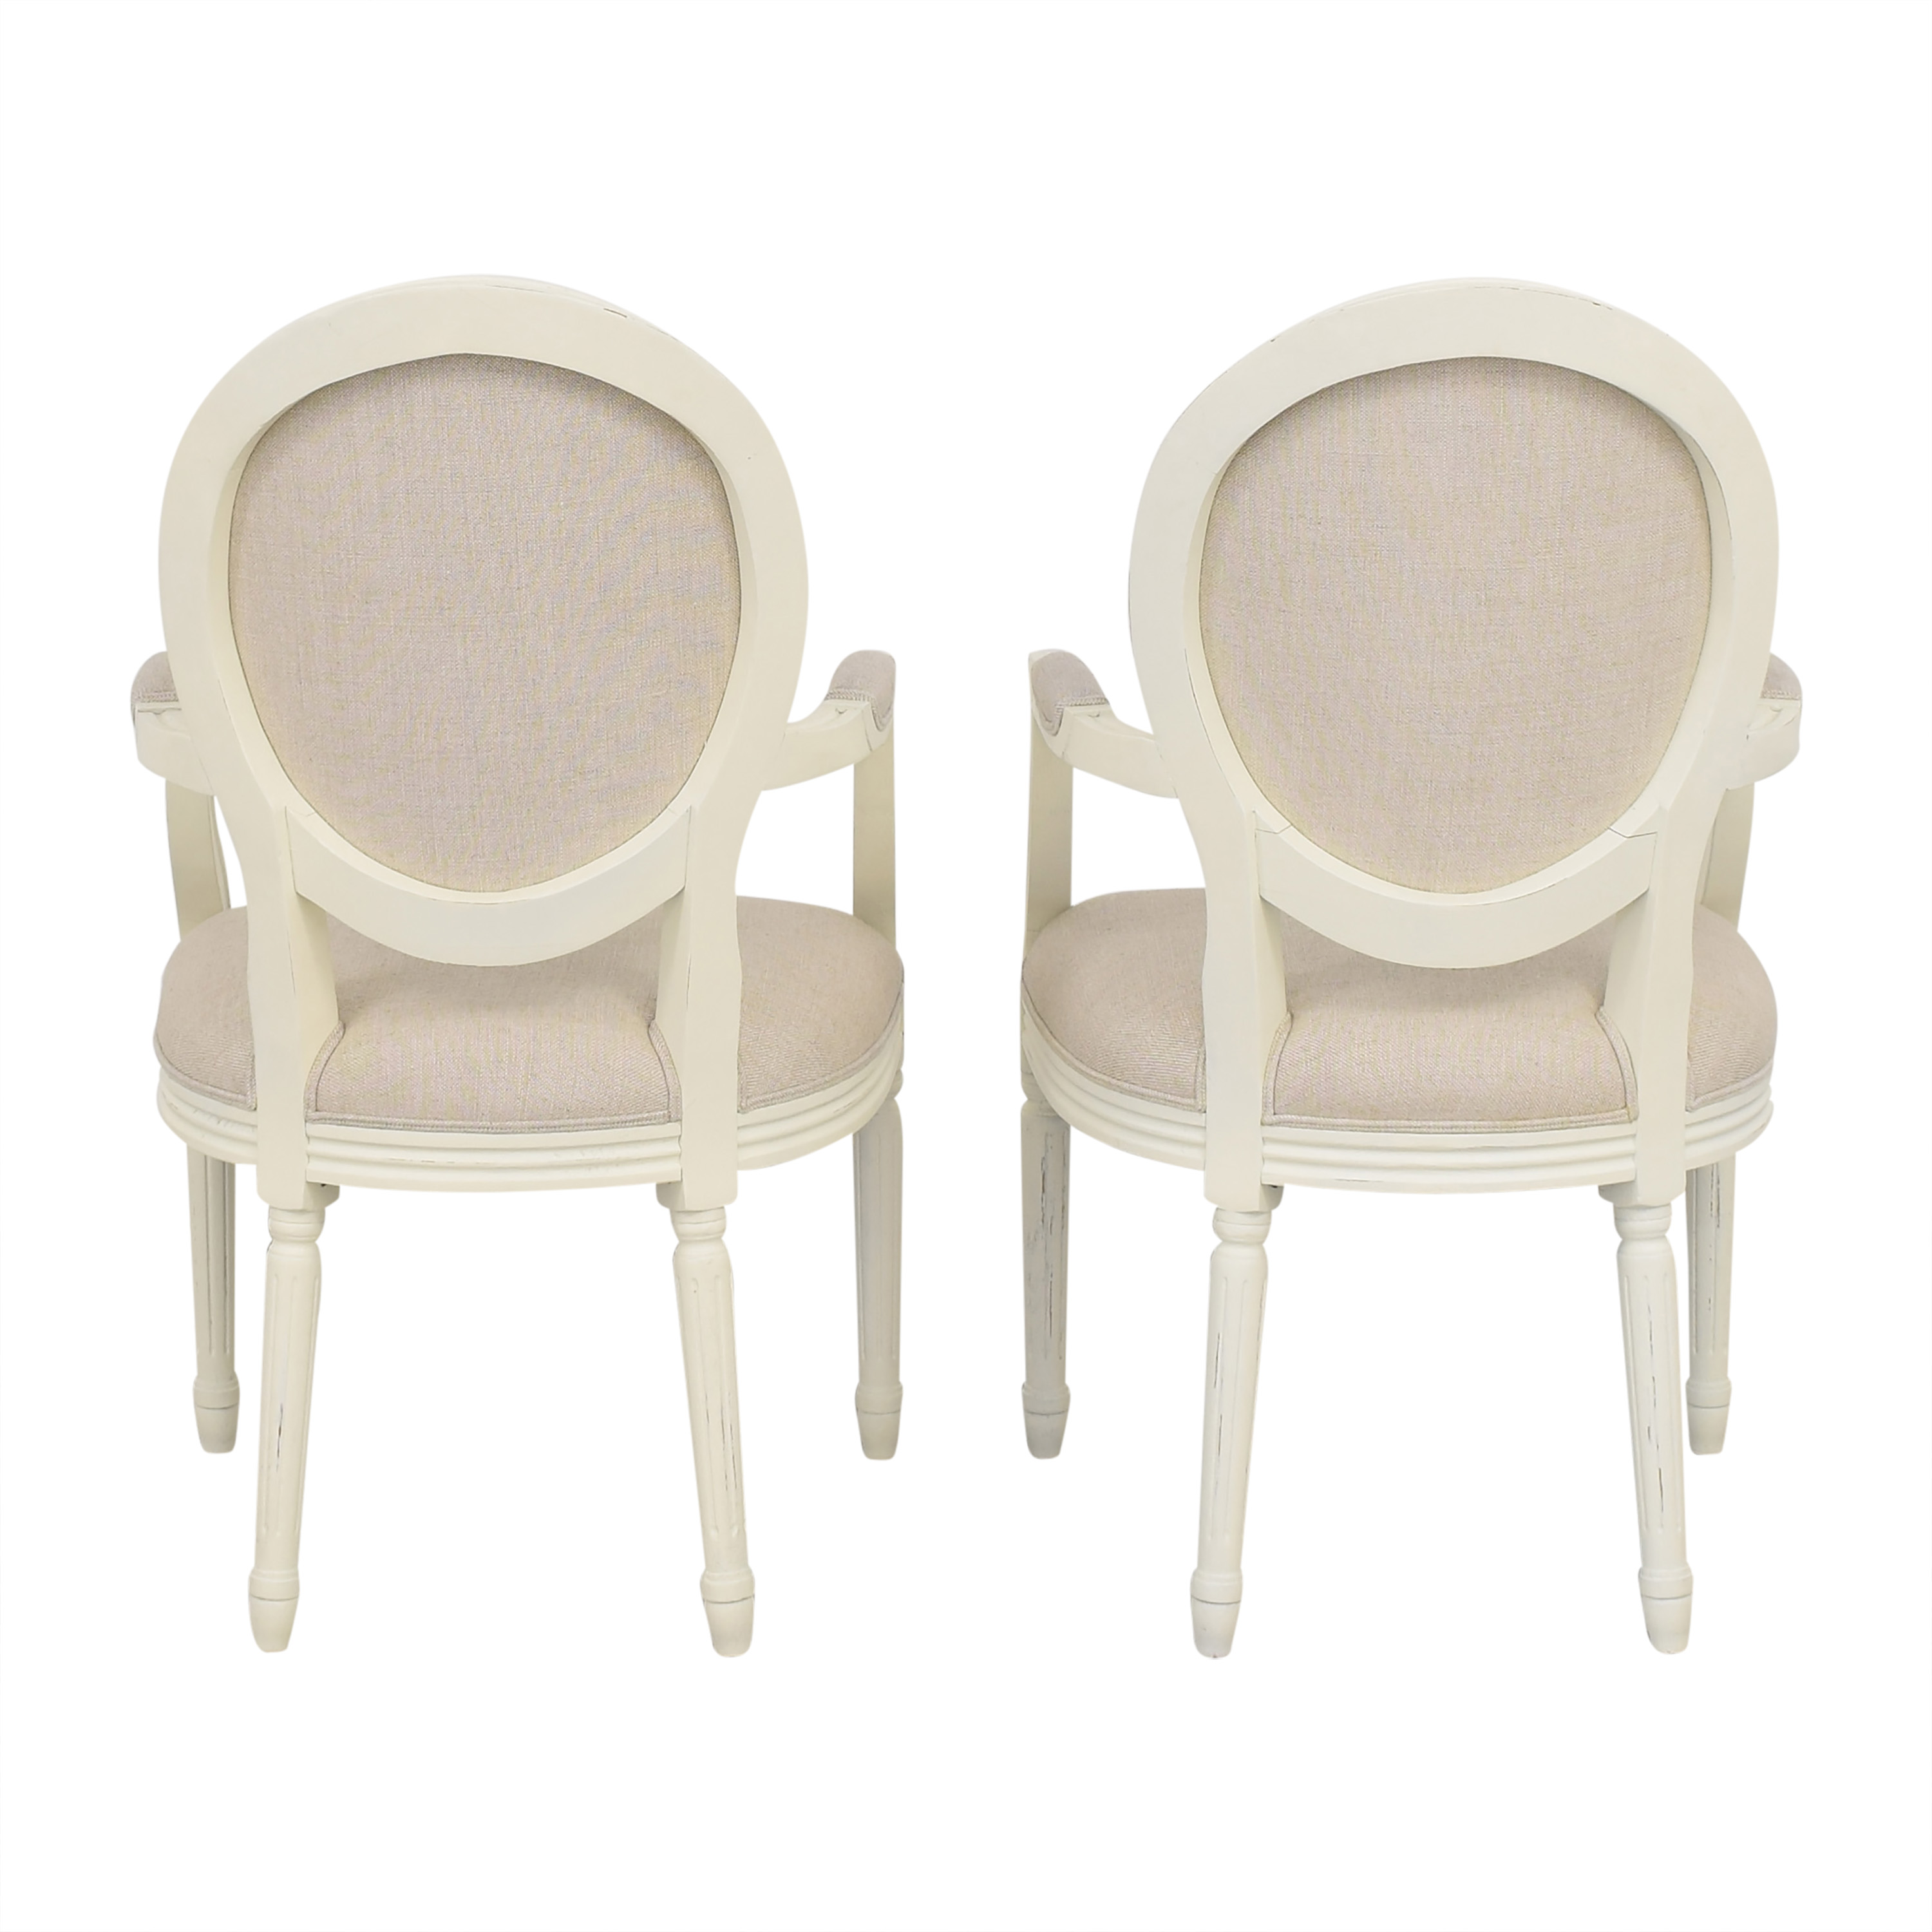 Restoration Hardware Restoration Hardware Vintage French Round Armchairs for sale